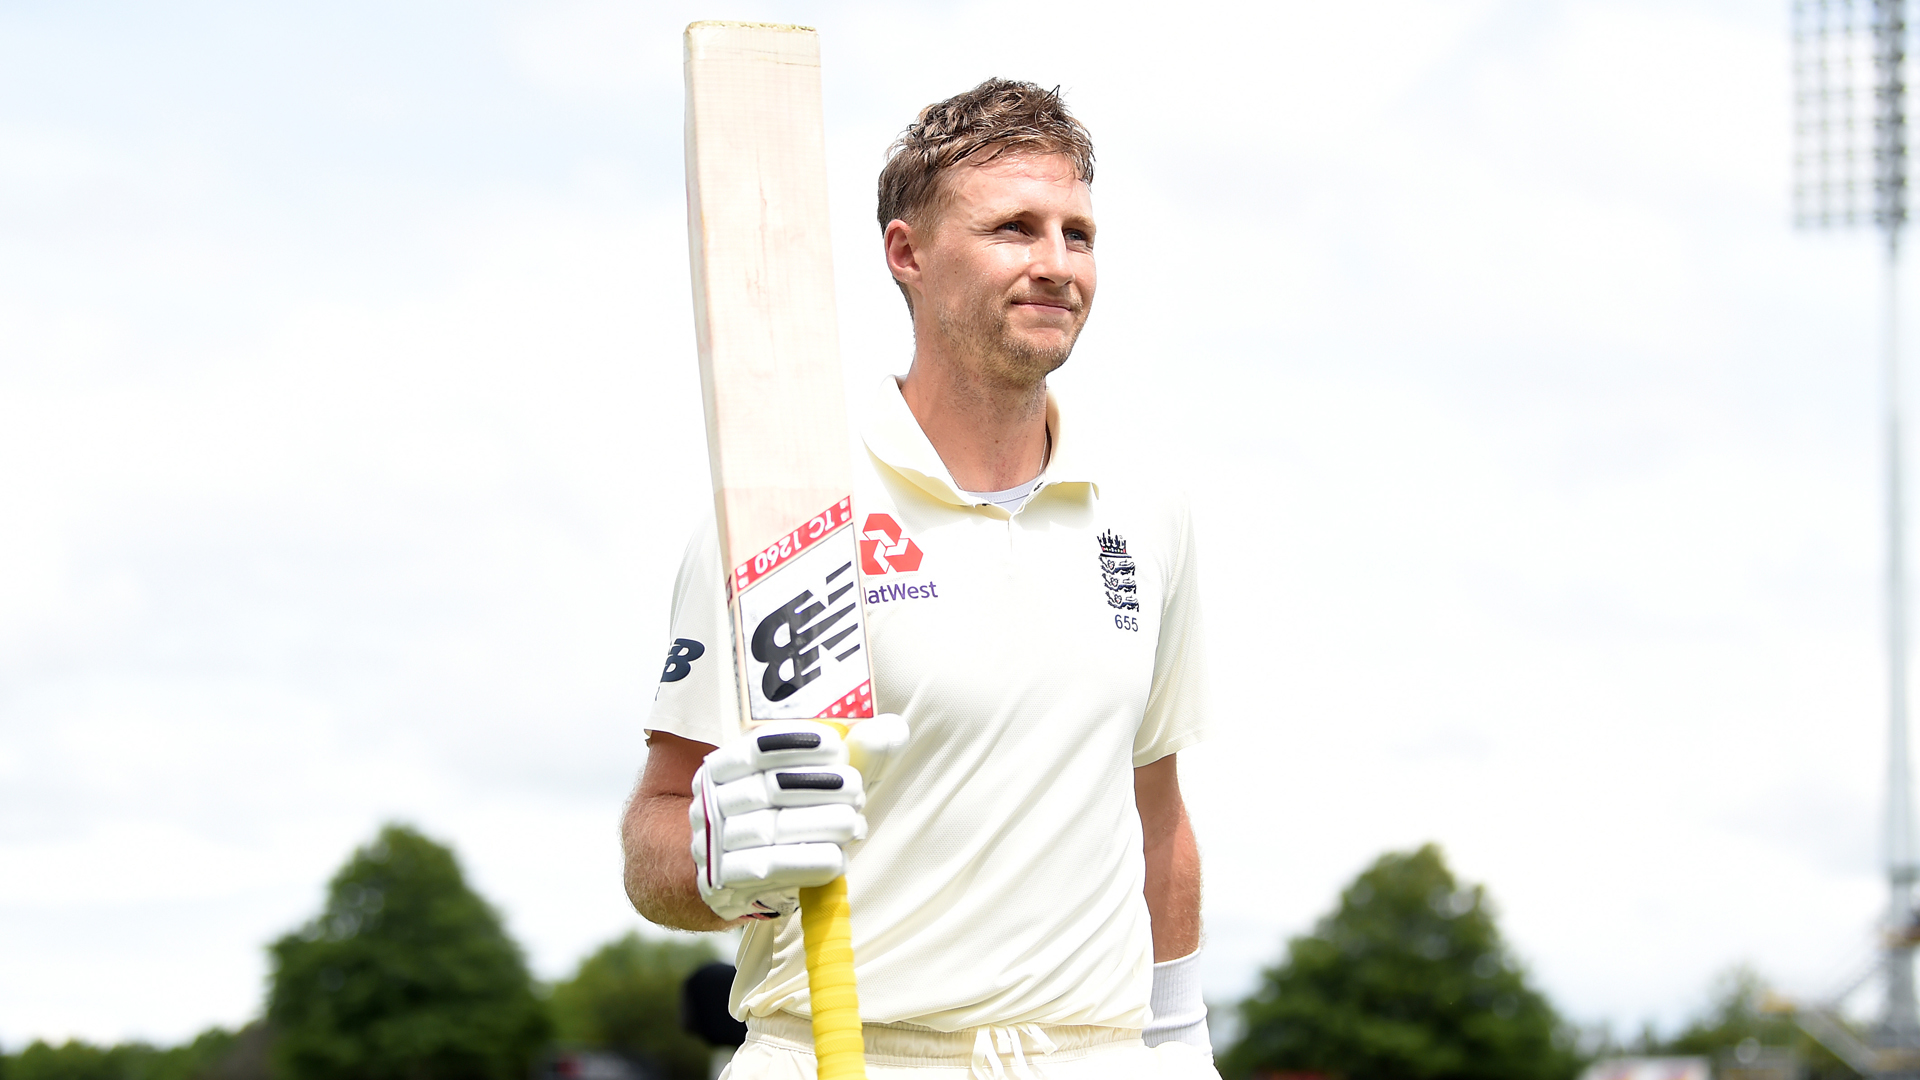 England keep second Test hopes alive after Root double century